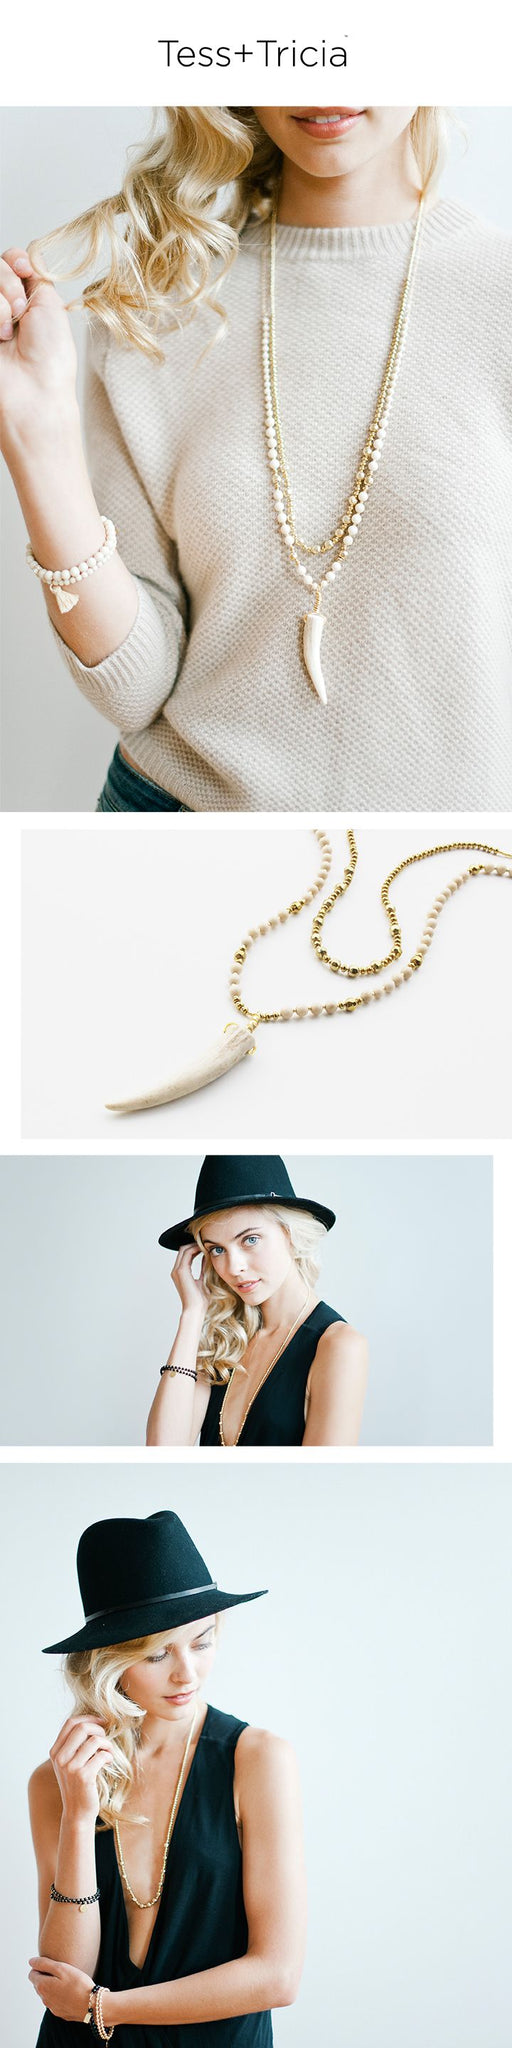 Nude + Gold Fall 2015 Jewelry Trend featuring Antler Tip Pendant and Natural Stone Beading by Tess+Tricia